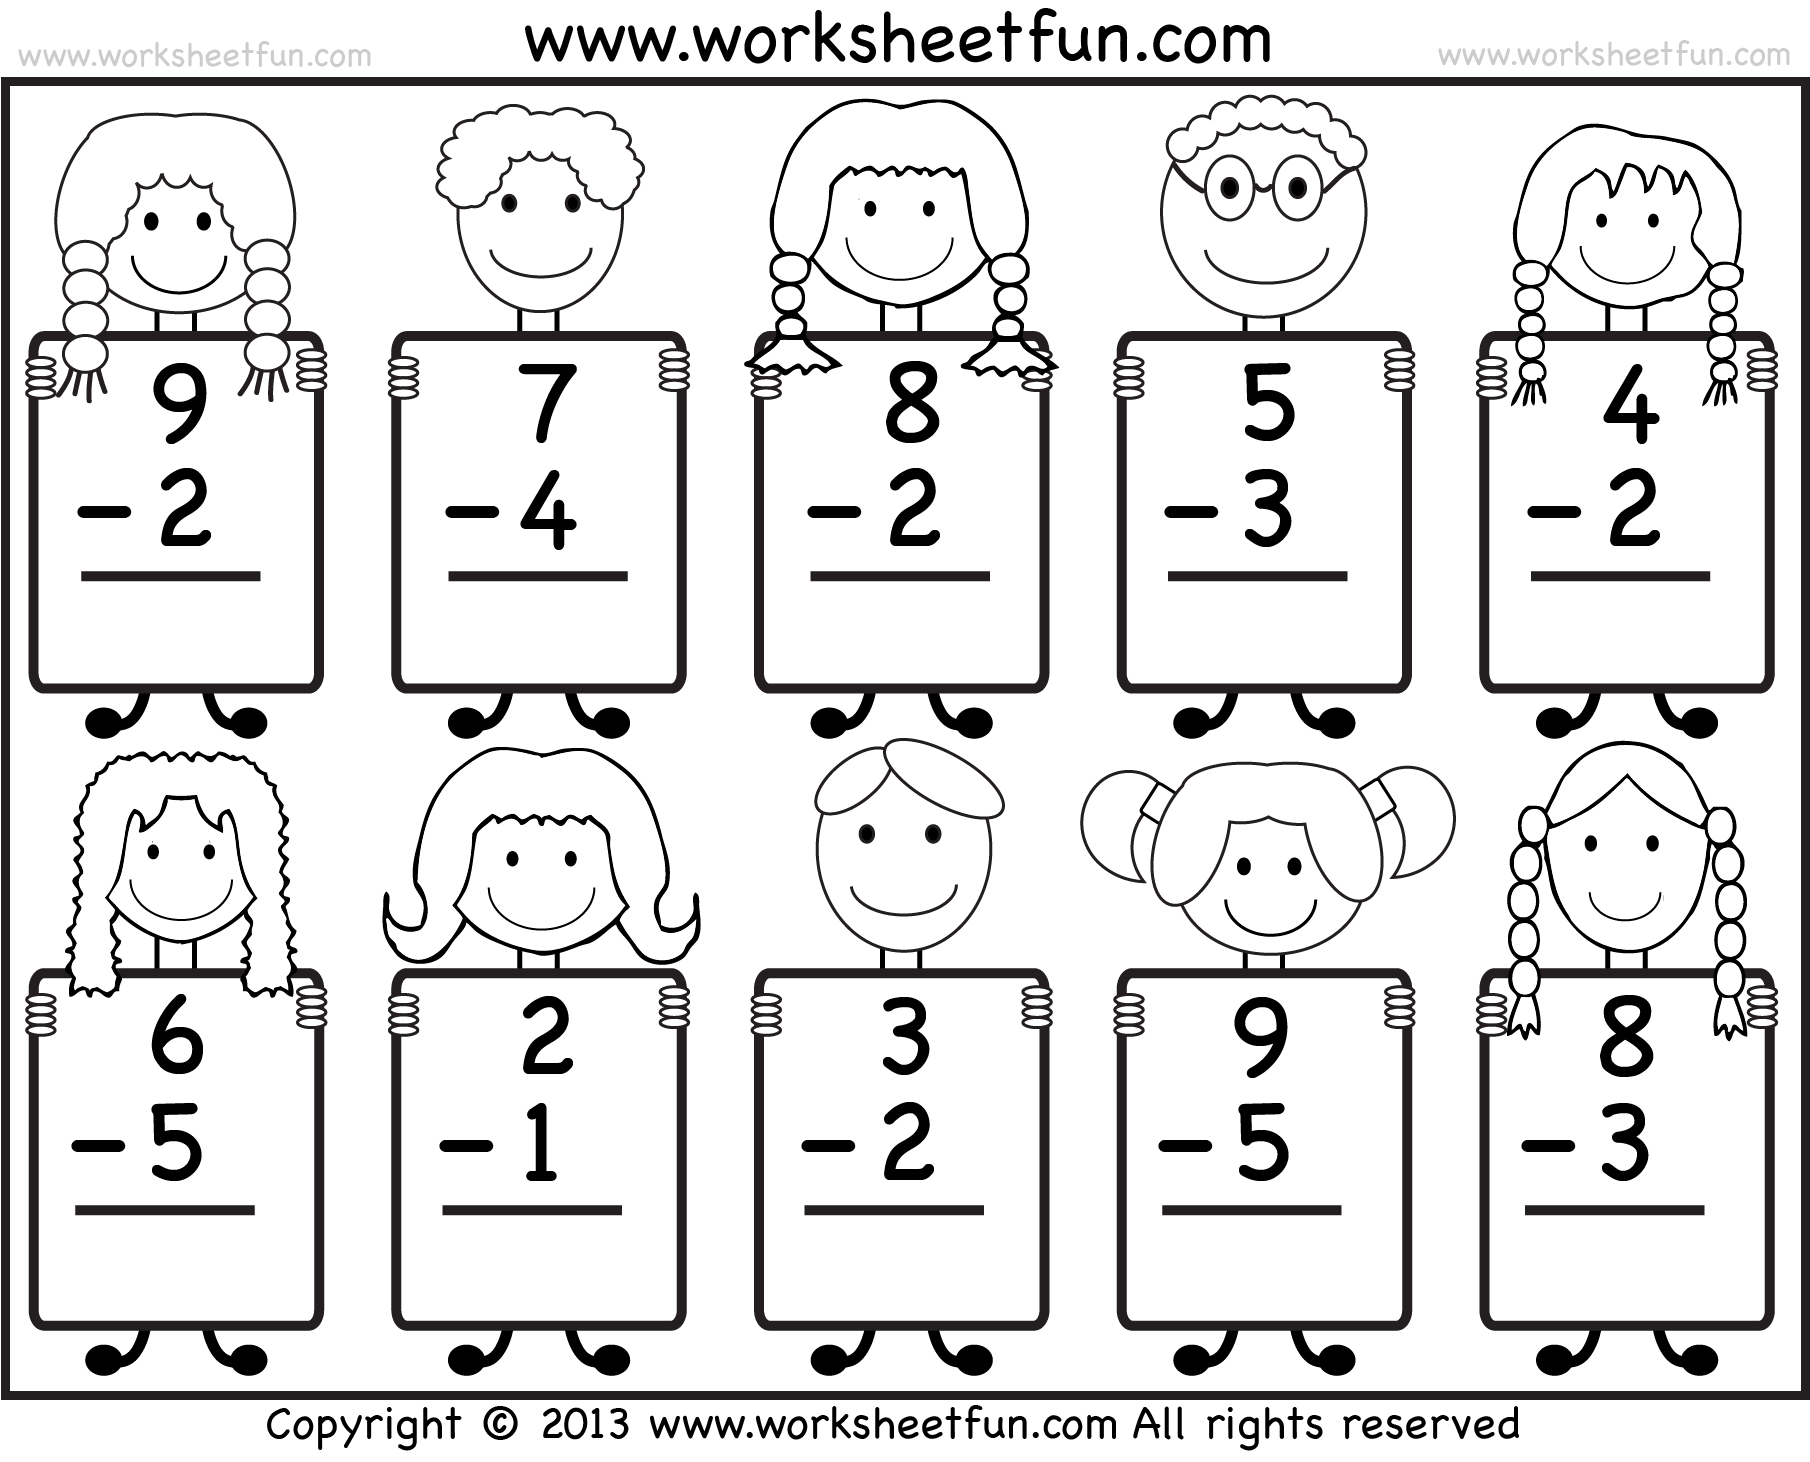 Worksheets Kindergarten Printable Worksheets beginner subtraction 10 kindergarten worksheets worksheet